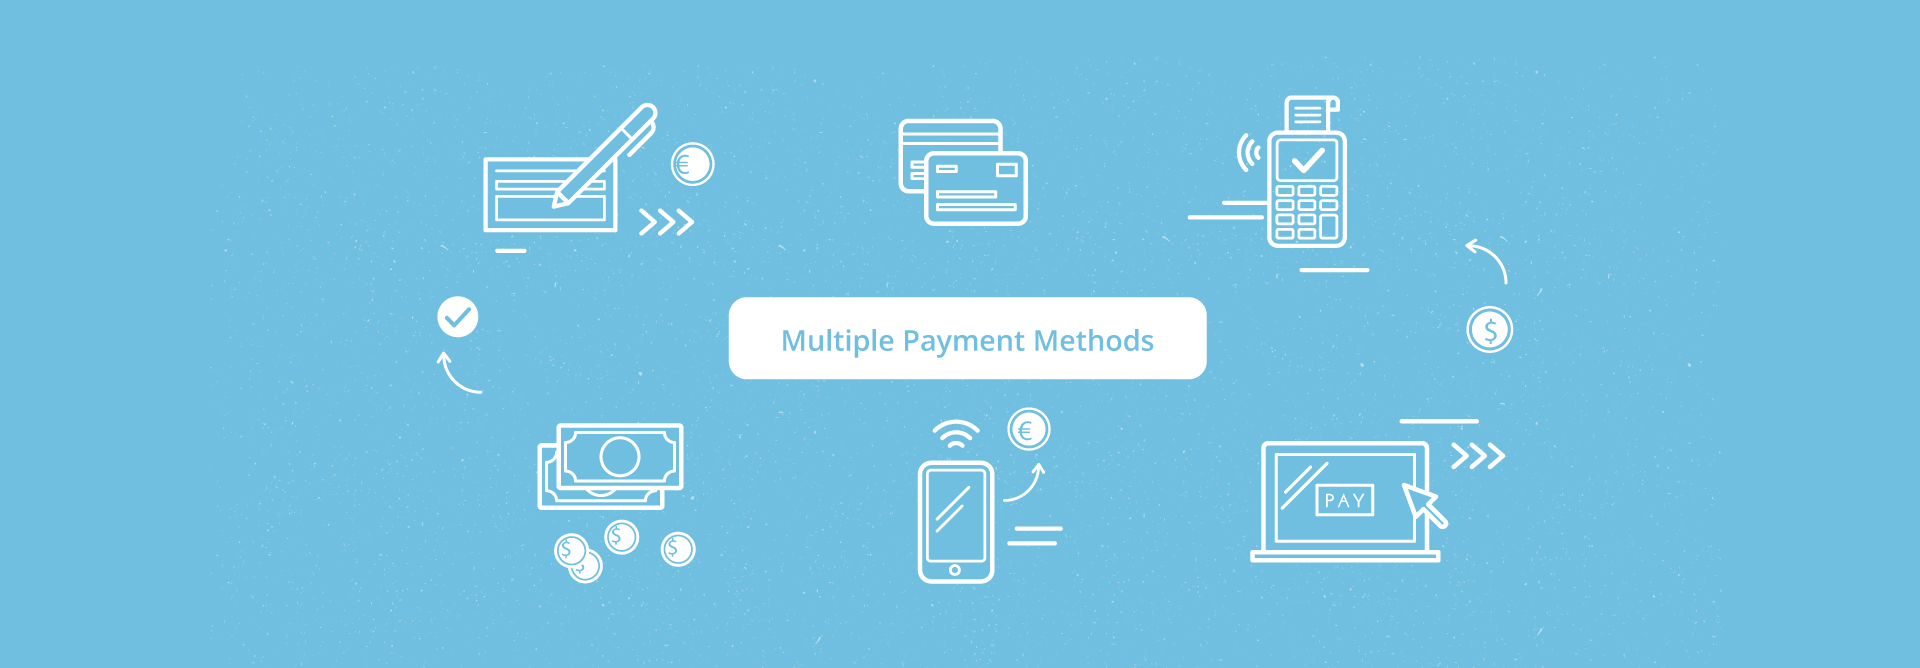 The Reasons to Accept Multiple Payment Methods